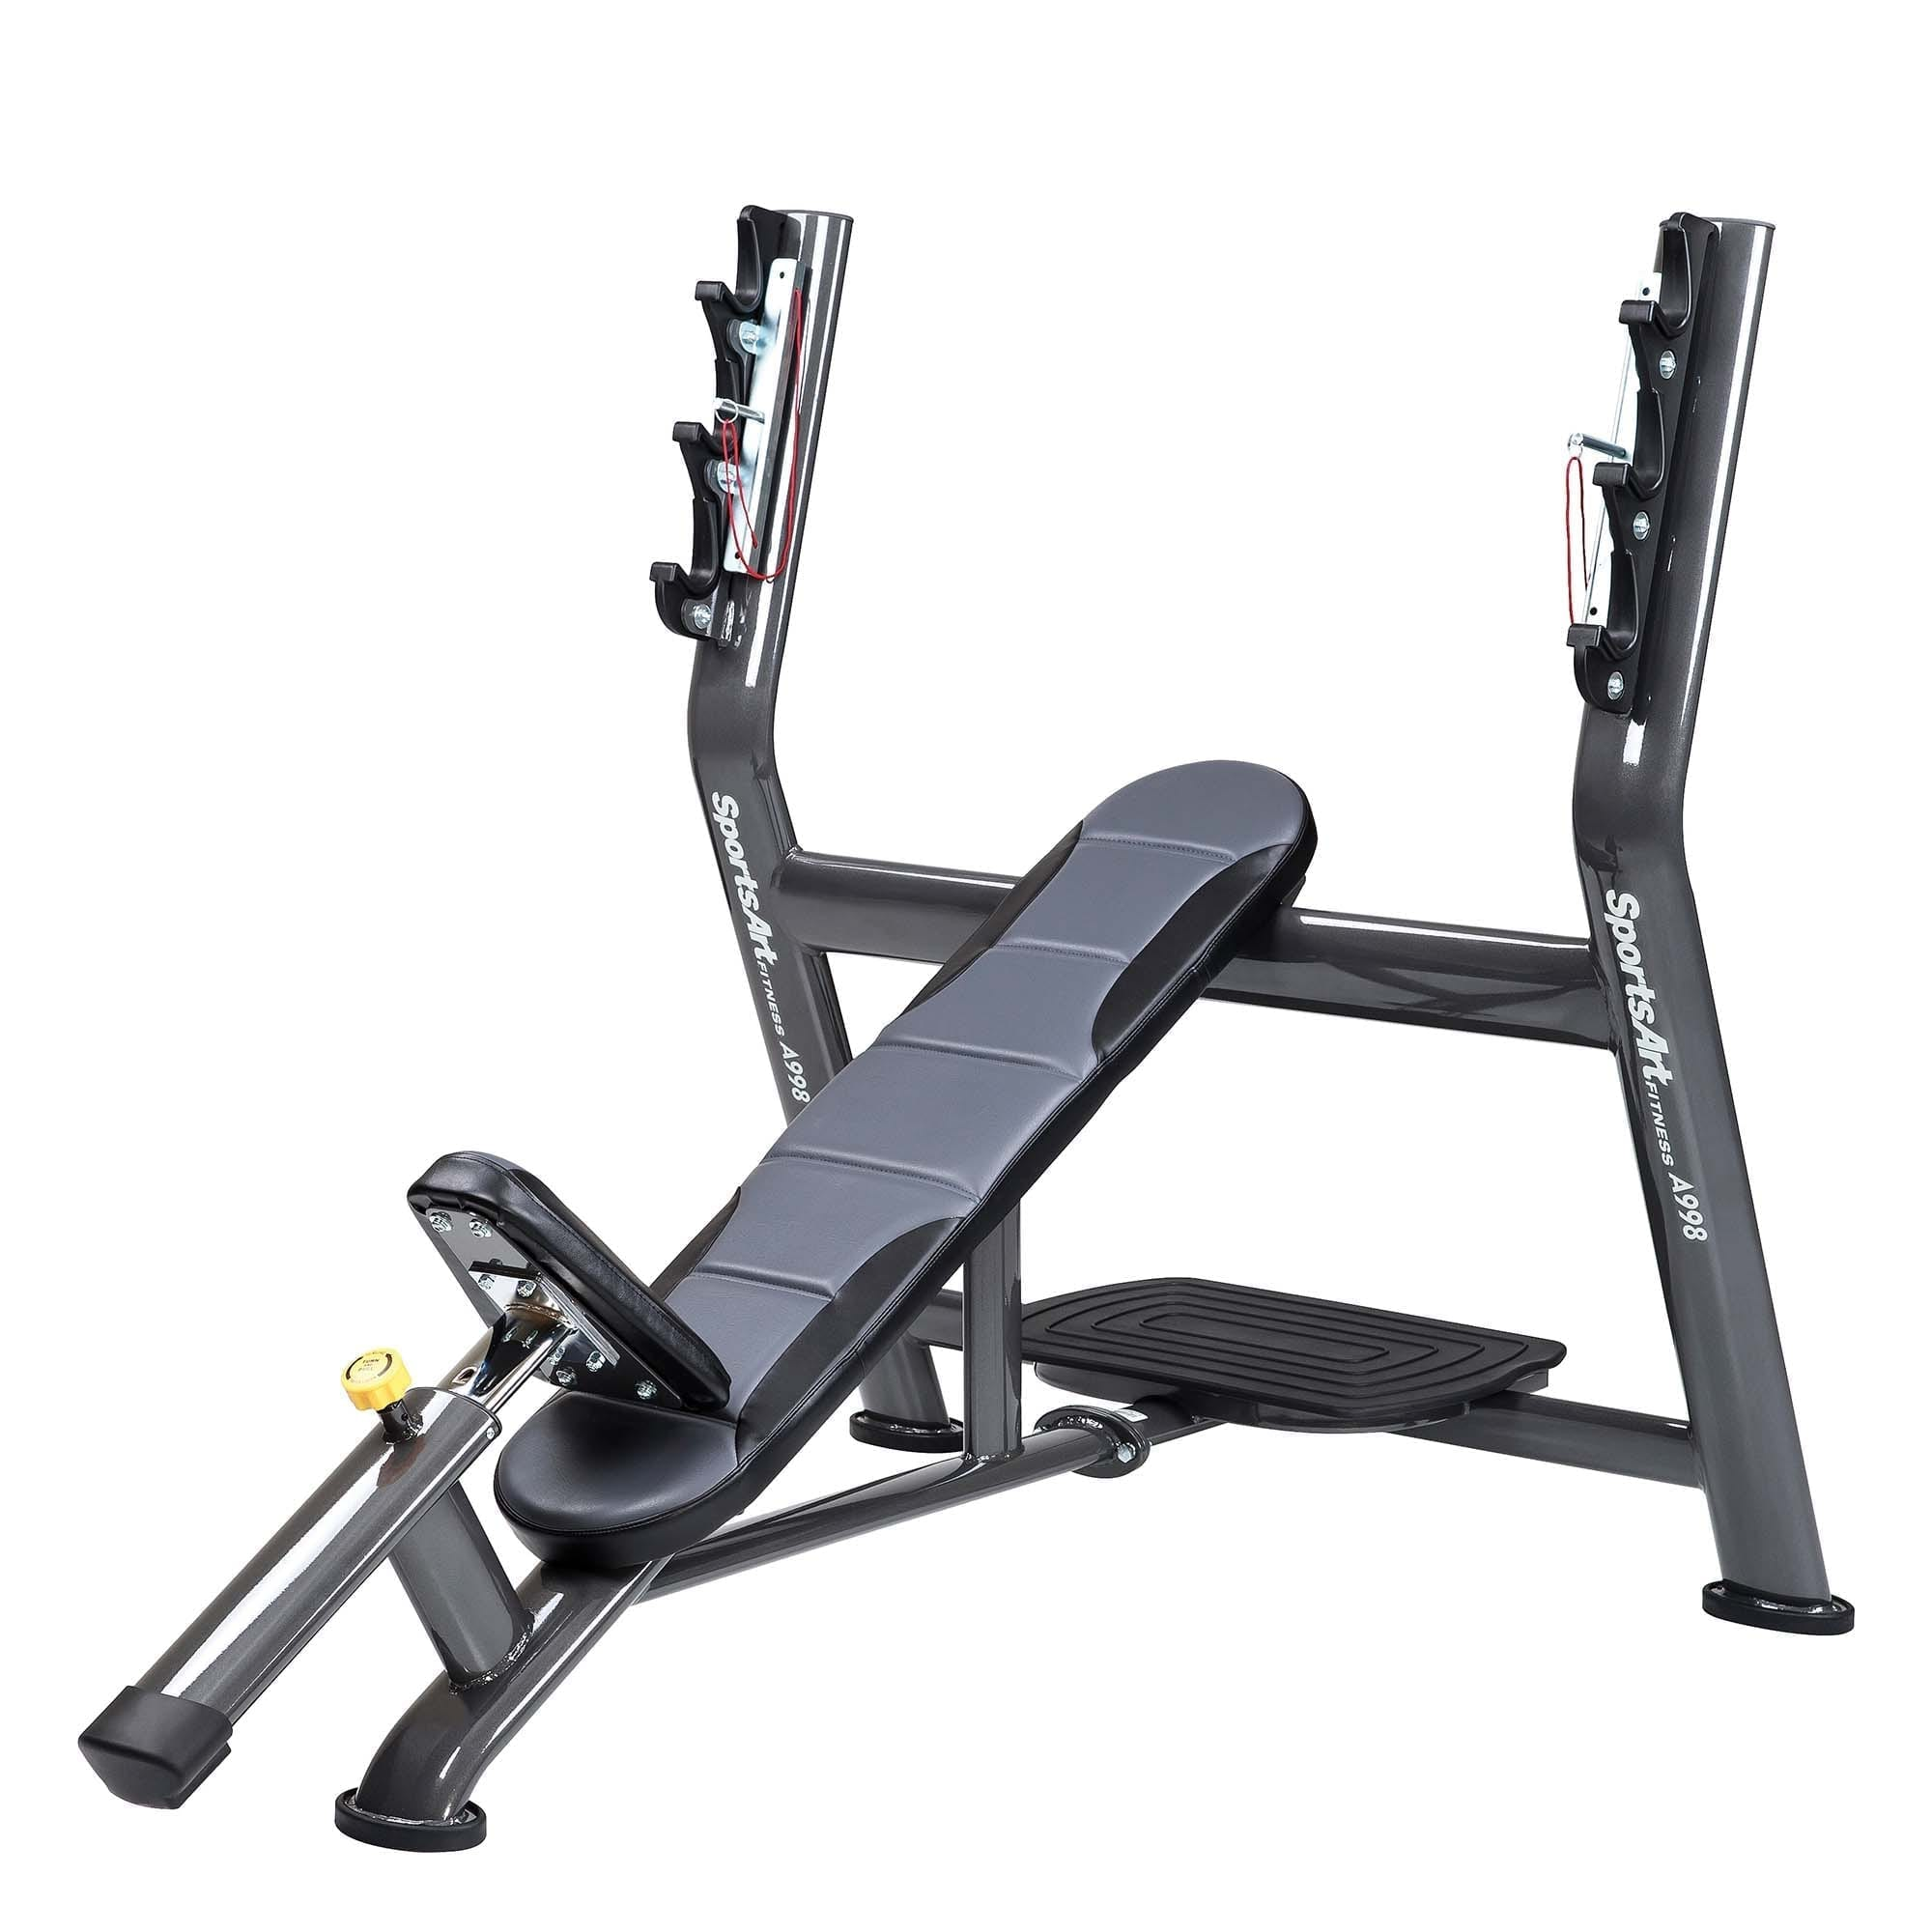 OLYMPIC INCLINE BENCH PRESS - SPORTSART (A998)